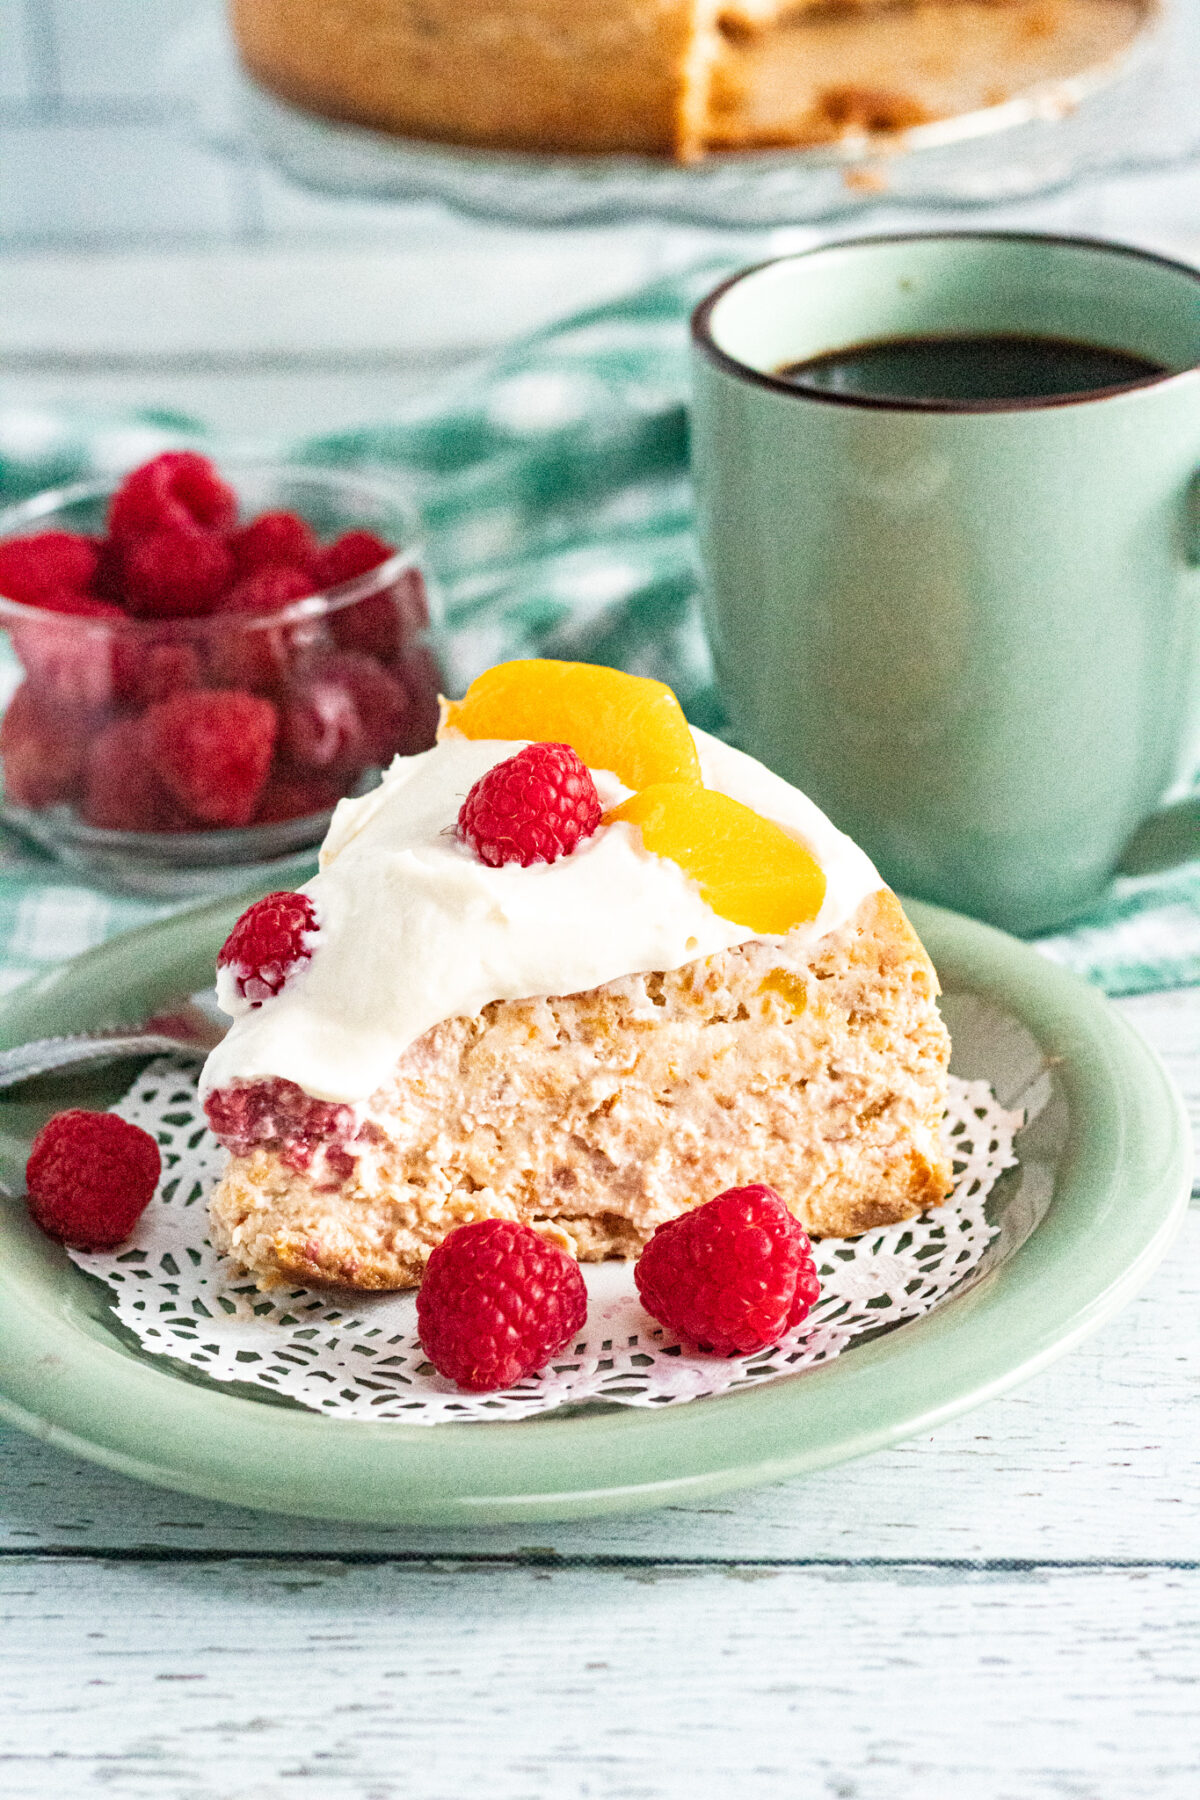 Sweet and creamy, this Instant Pot Peach Melba Cheesecake is filled with fresh peaches & raspberries then topped with a cream cheese frosting.